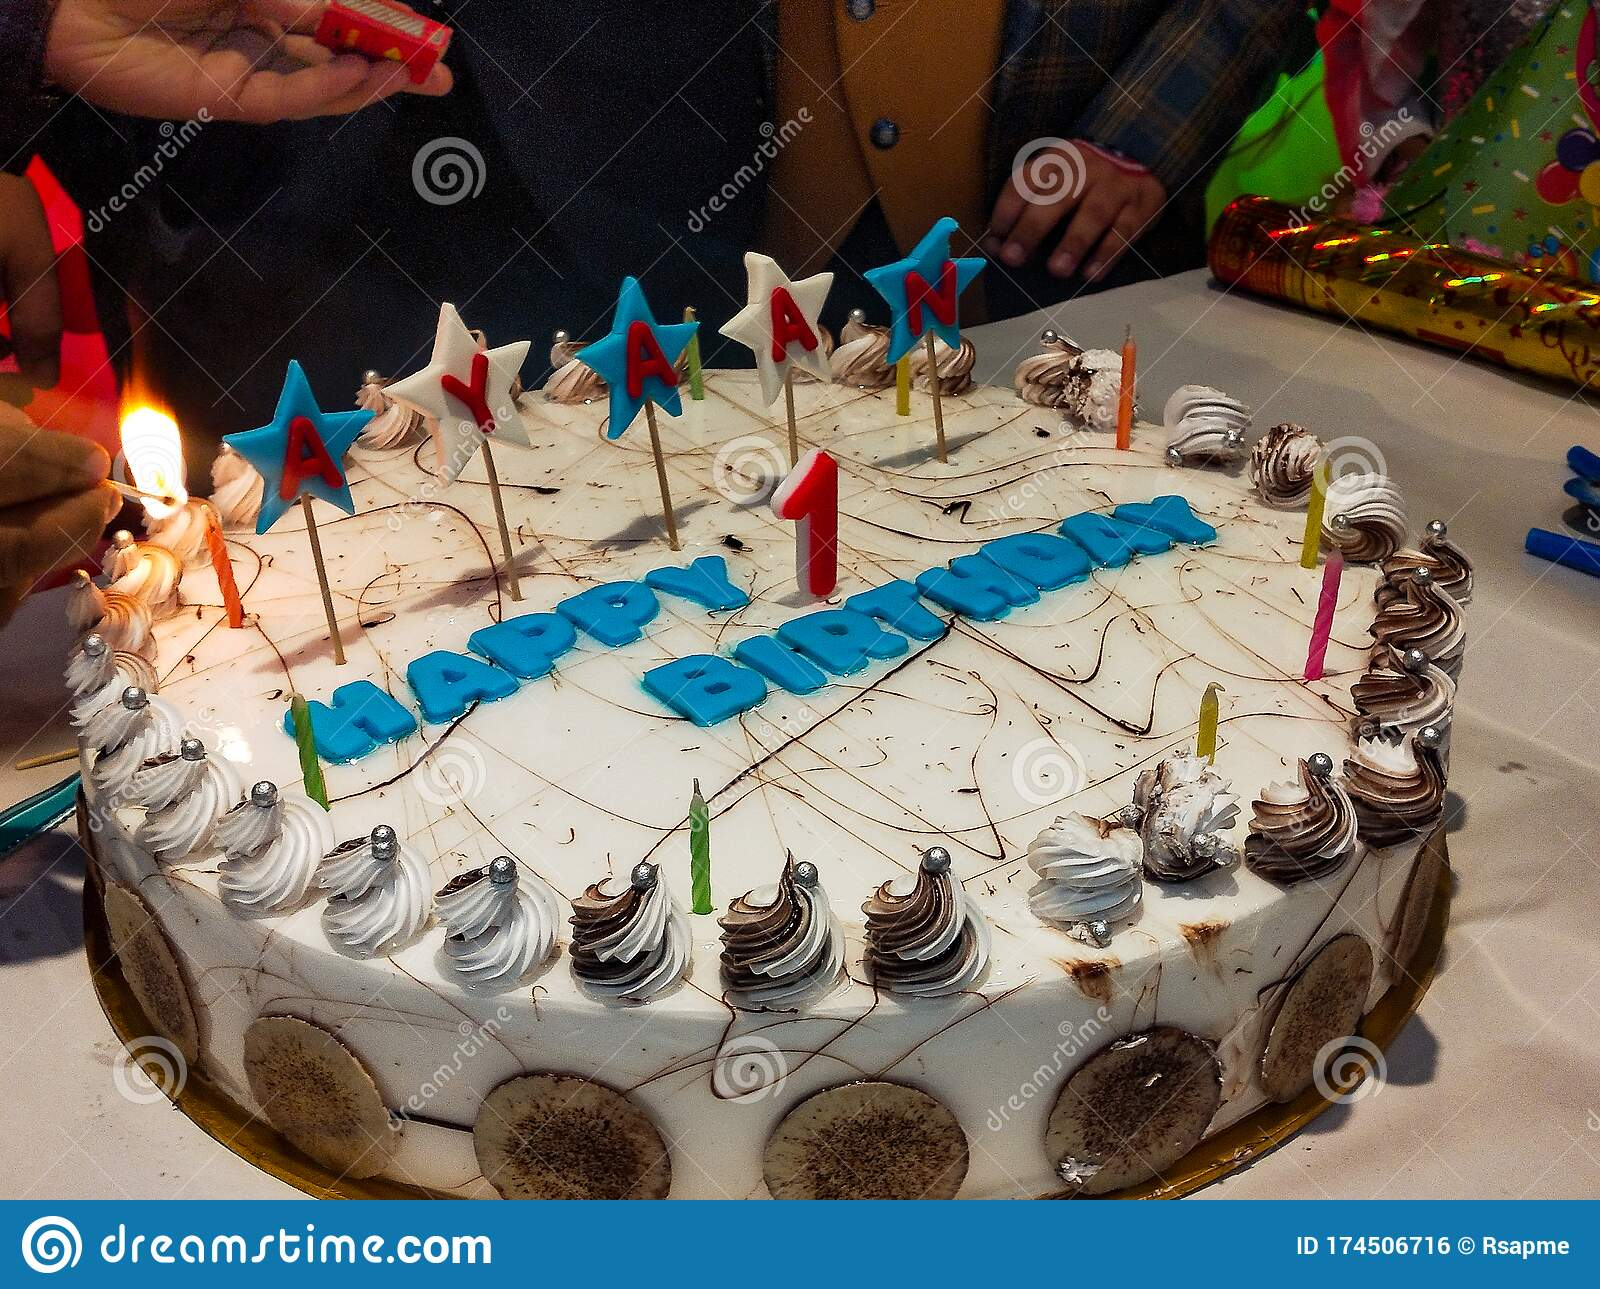 Big White Cake For Celebrating Baby Boy Happy Birthday With Awesome Decorations In Delhi India Birthday Party Of Baby Boy Stock Photo Image Of Delhi Decorations 174506716